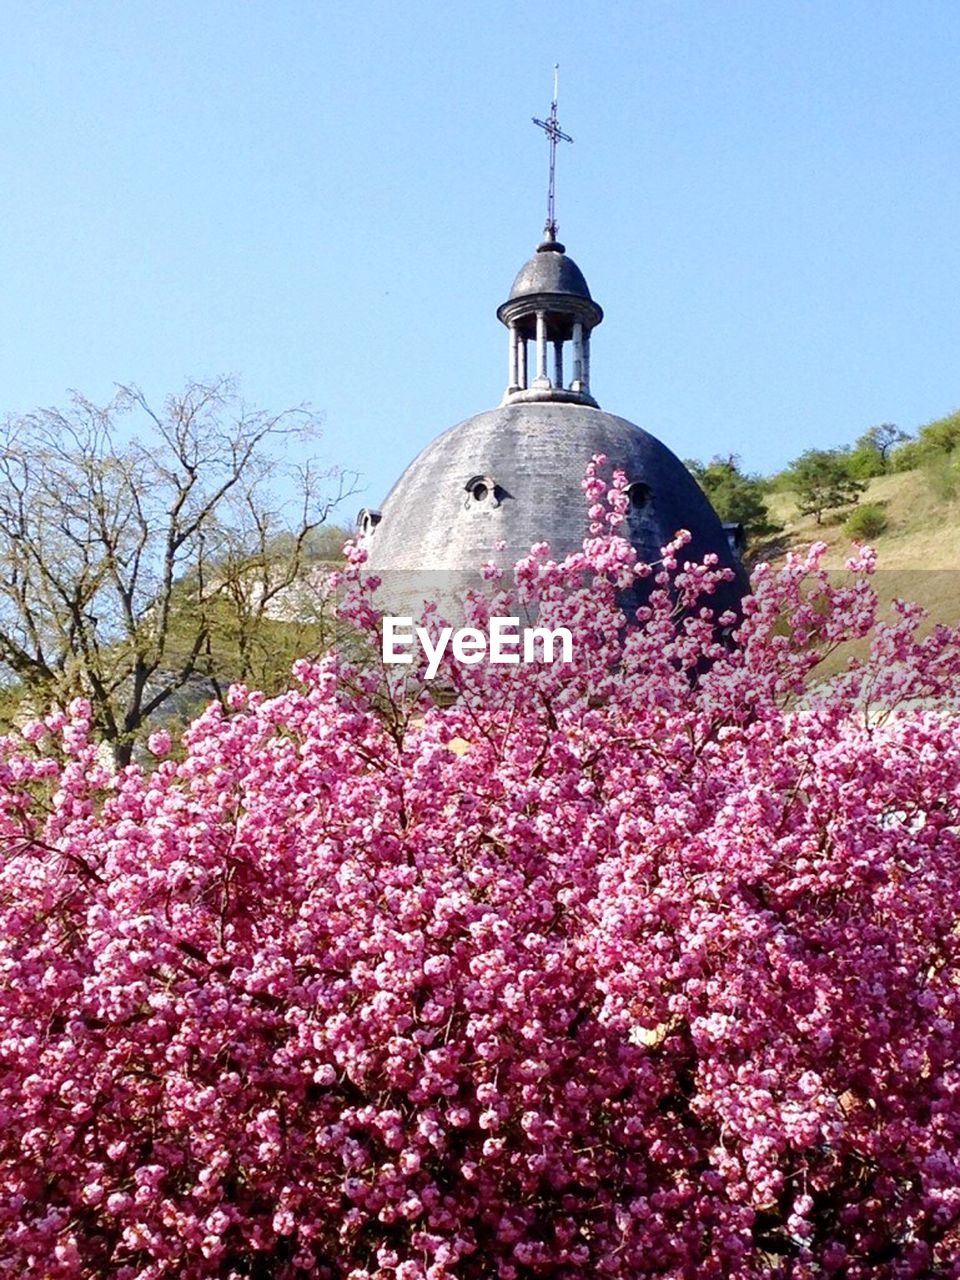 sky, plant, flower, flowering plant, nature, tree, low angle view, clear sky, growth, day, pink color, built structure, freshness, architecture, building exterior, fragility, place of worship, beauty in nature, religion, belief, springtime, no people, outdoors, cherry blossom, spire